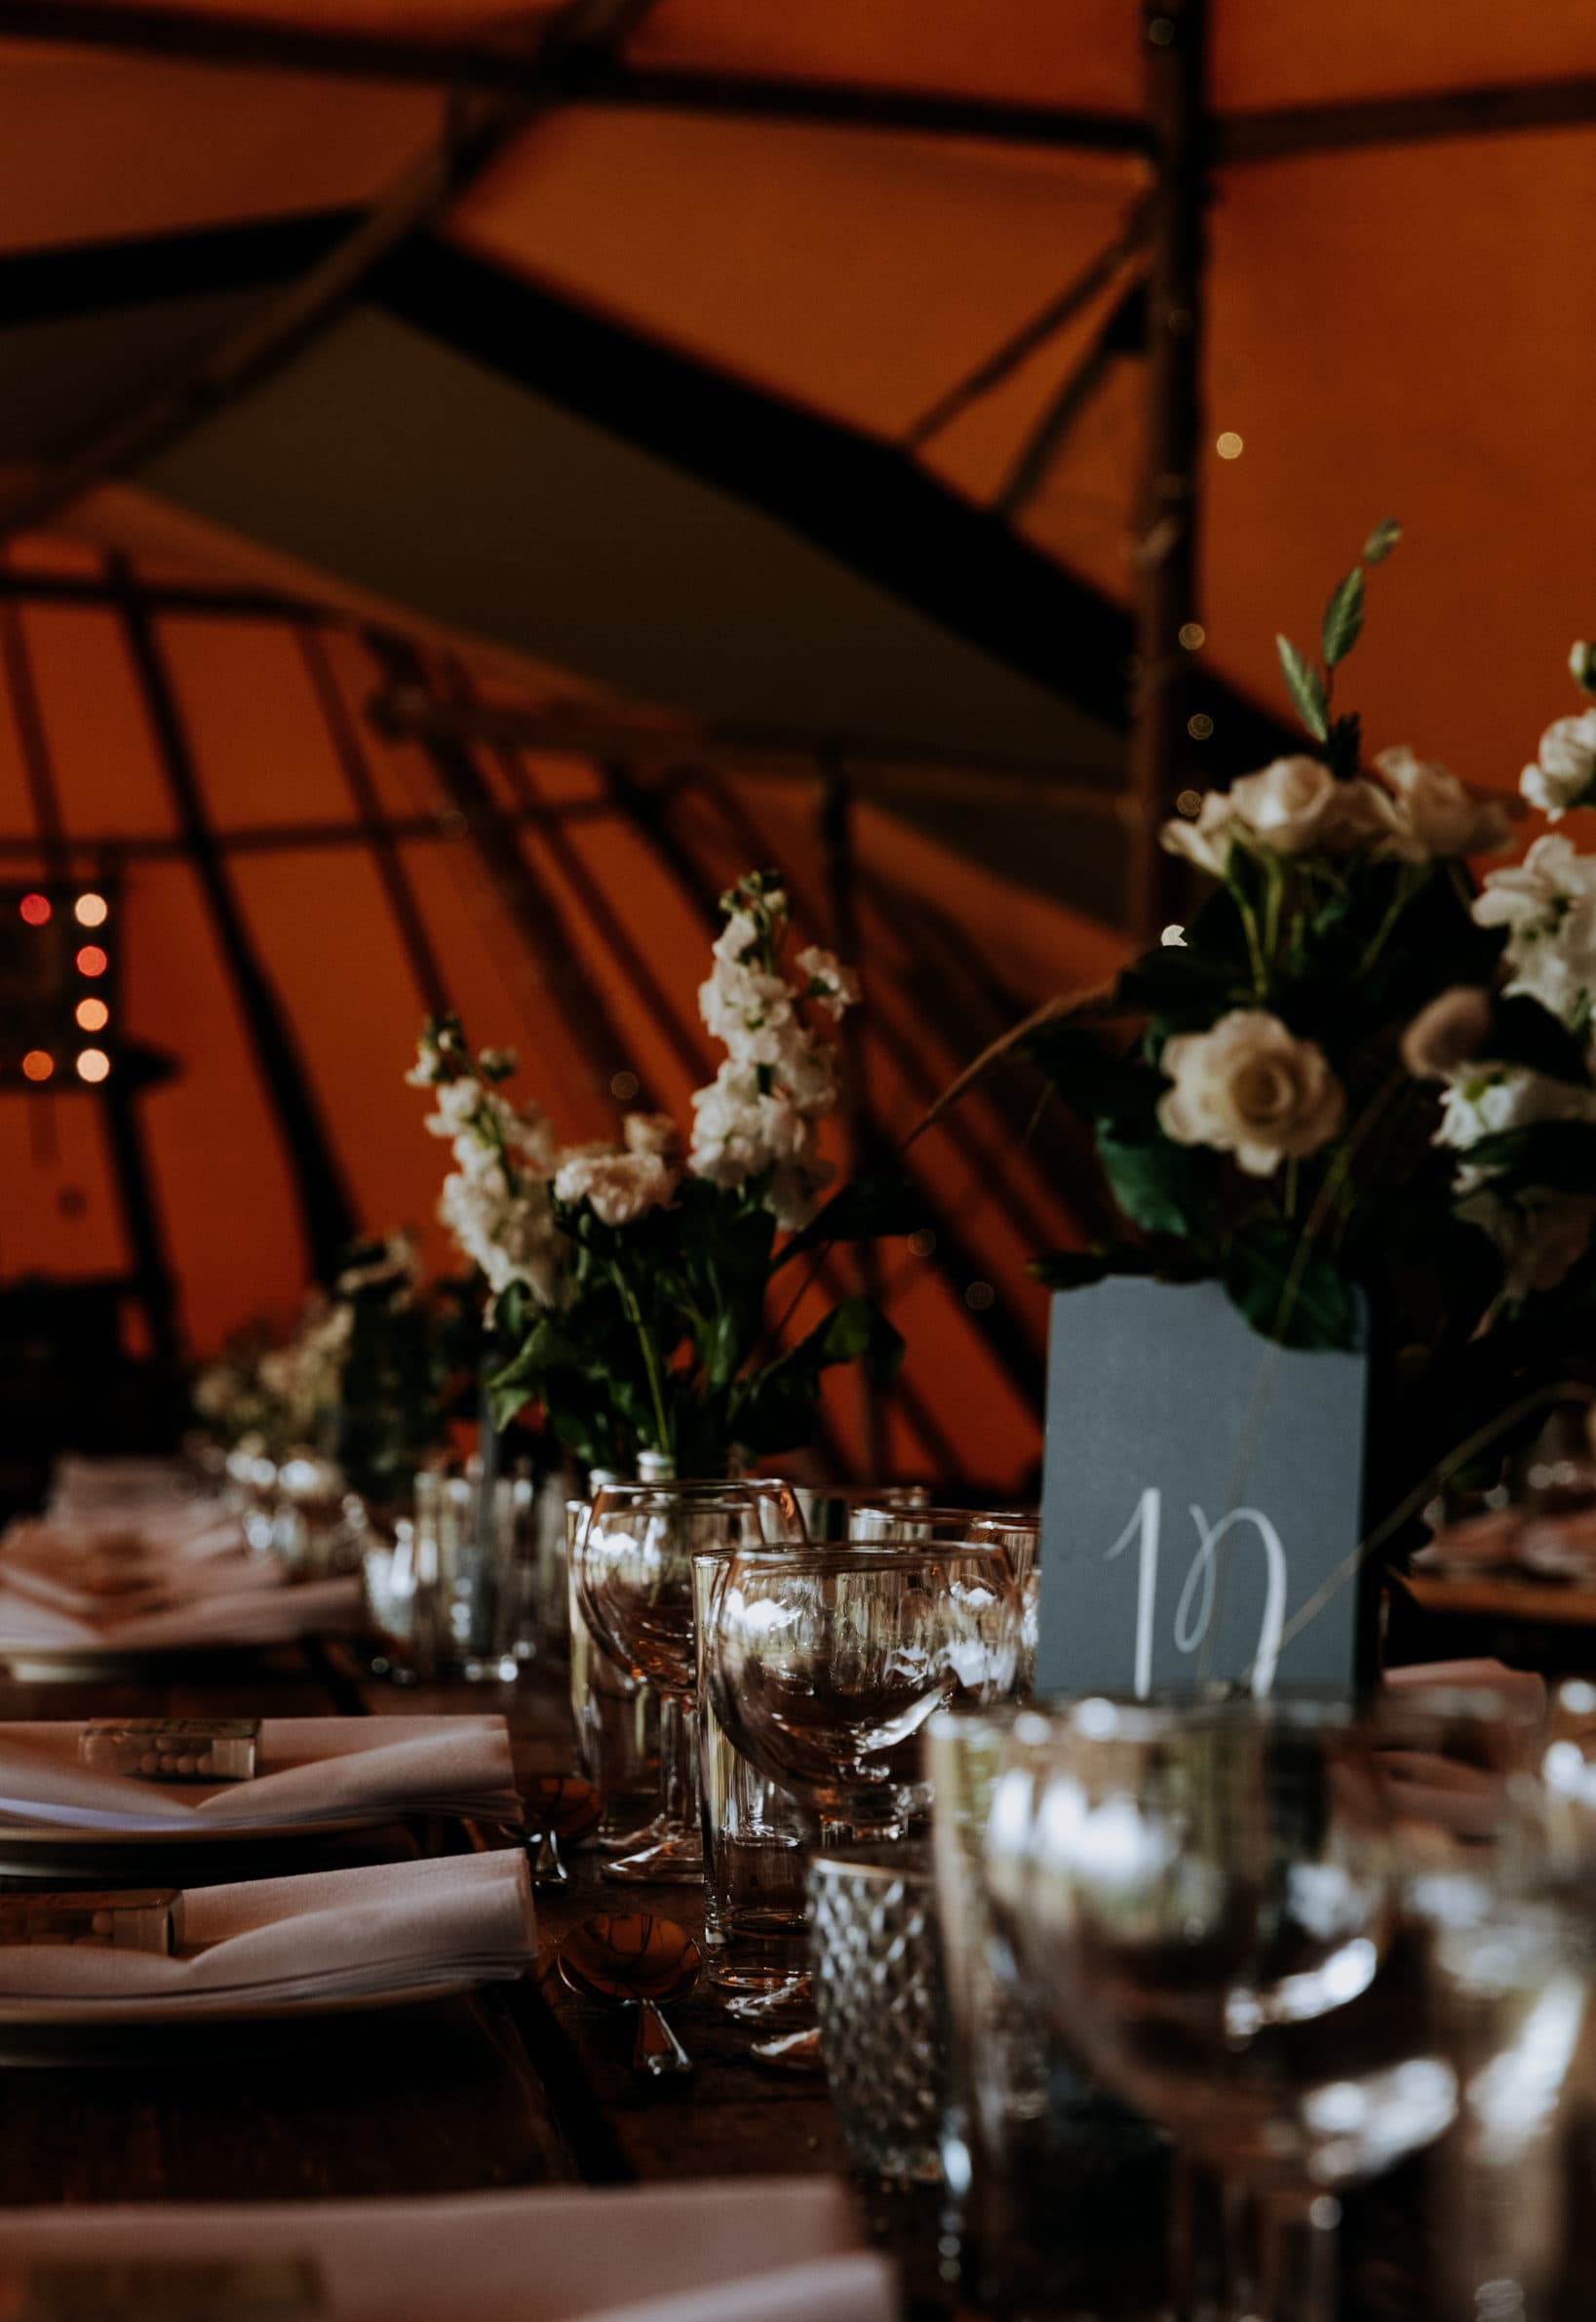 Tipi wedding at Chaucer Barn decorations with hanging foliage and wooden tables